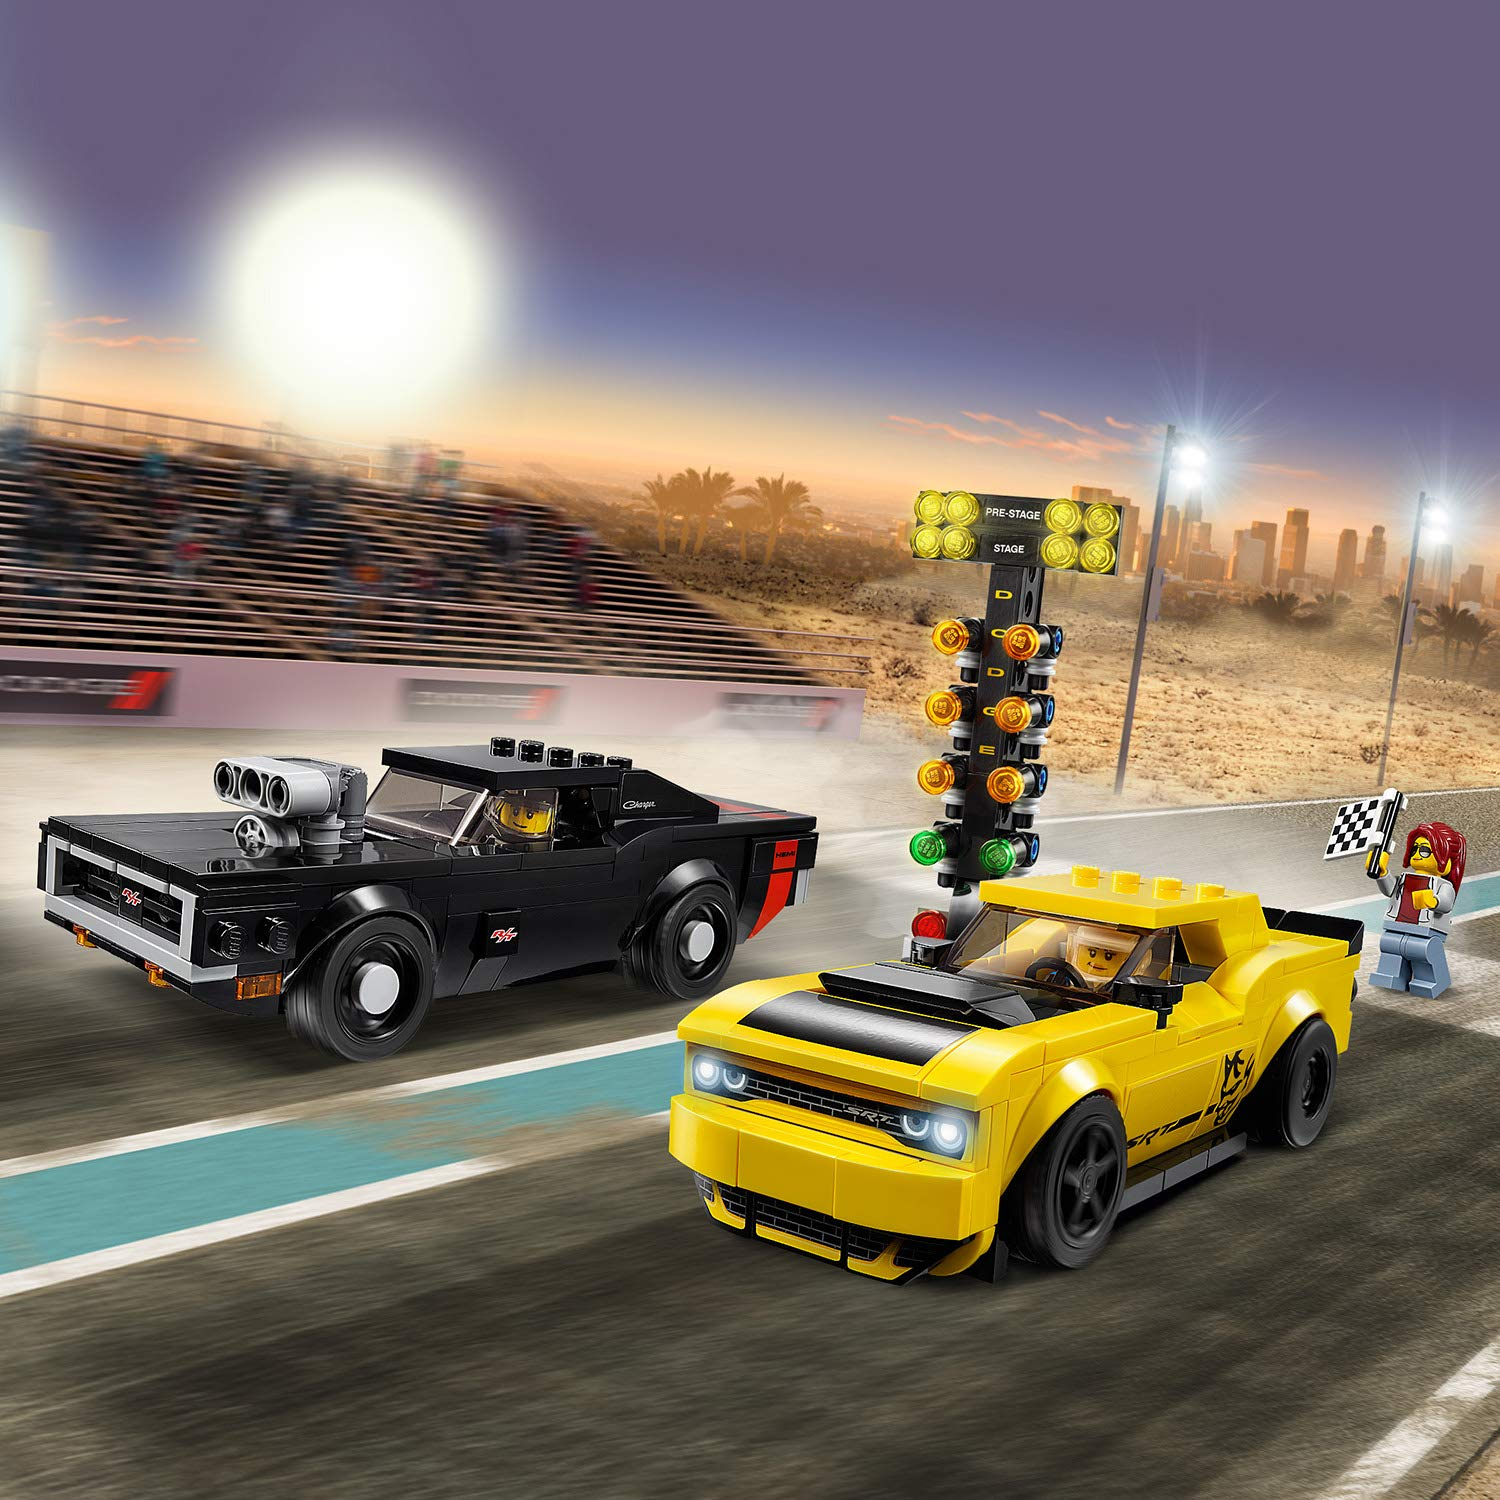 Amazon.com: LEGO Speed Champions - Dodge Challenger SRT Demon de 2018 y Dodge Charger R/T de 1970 (75893): Toys & Games